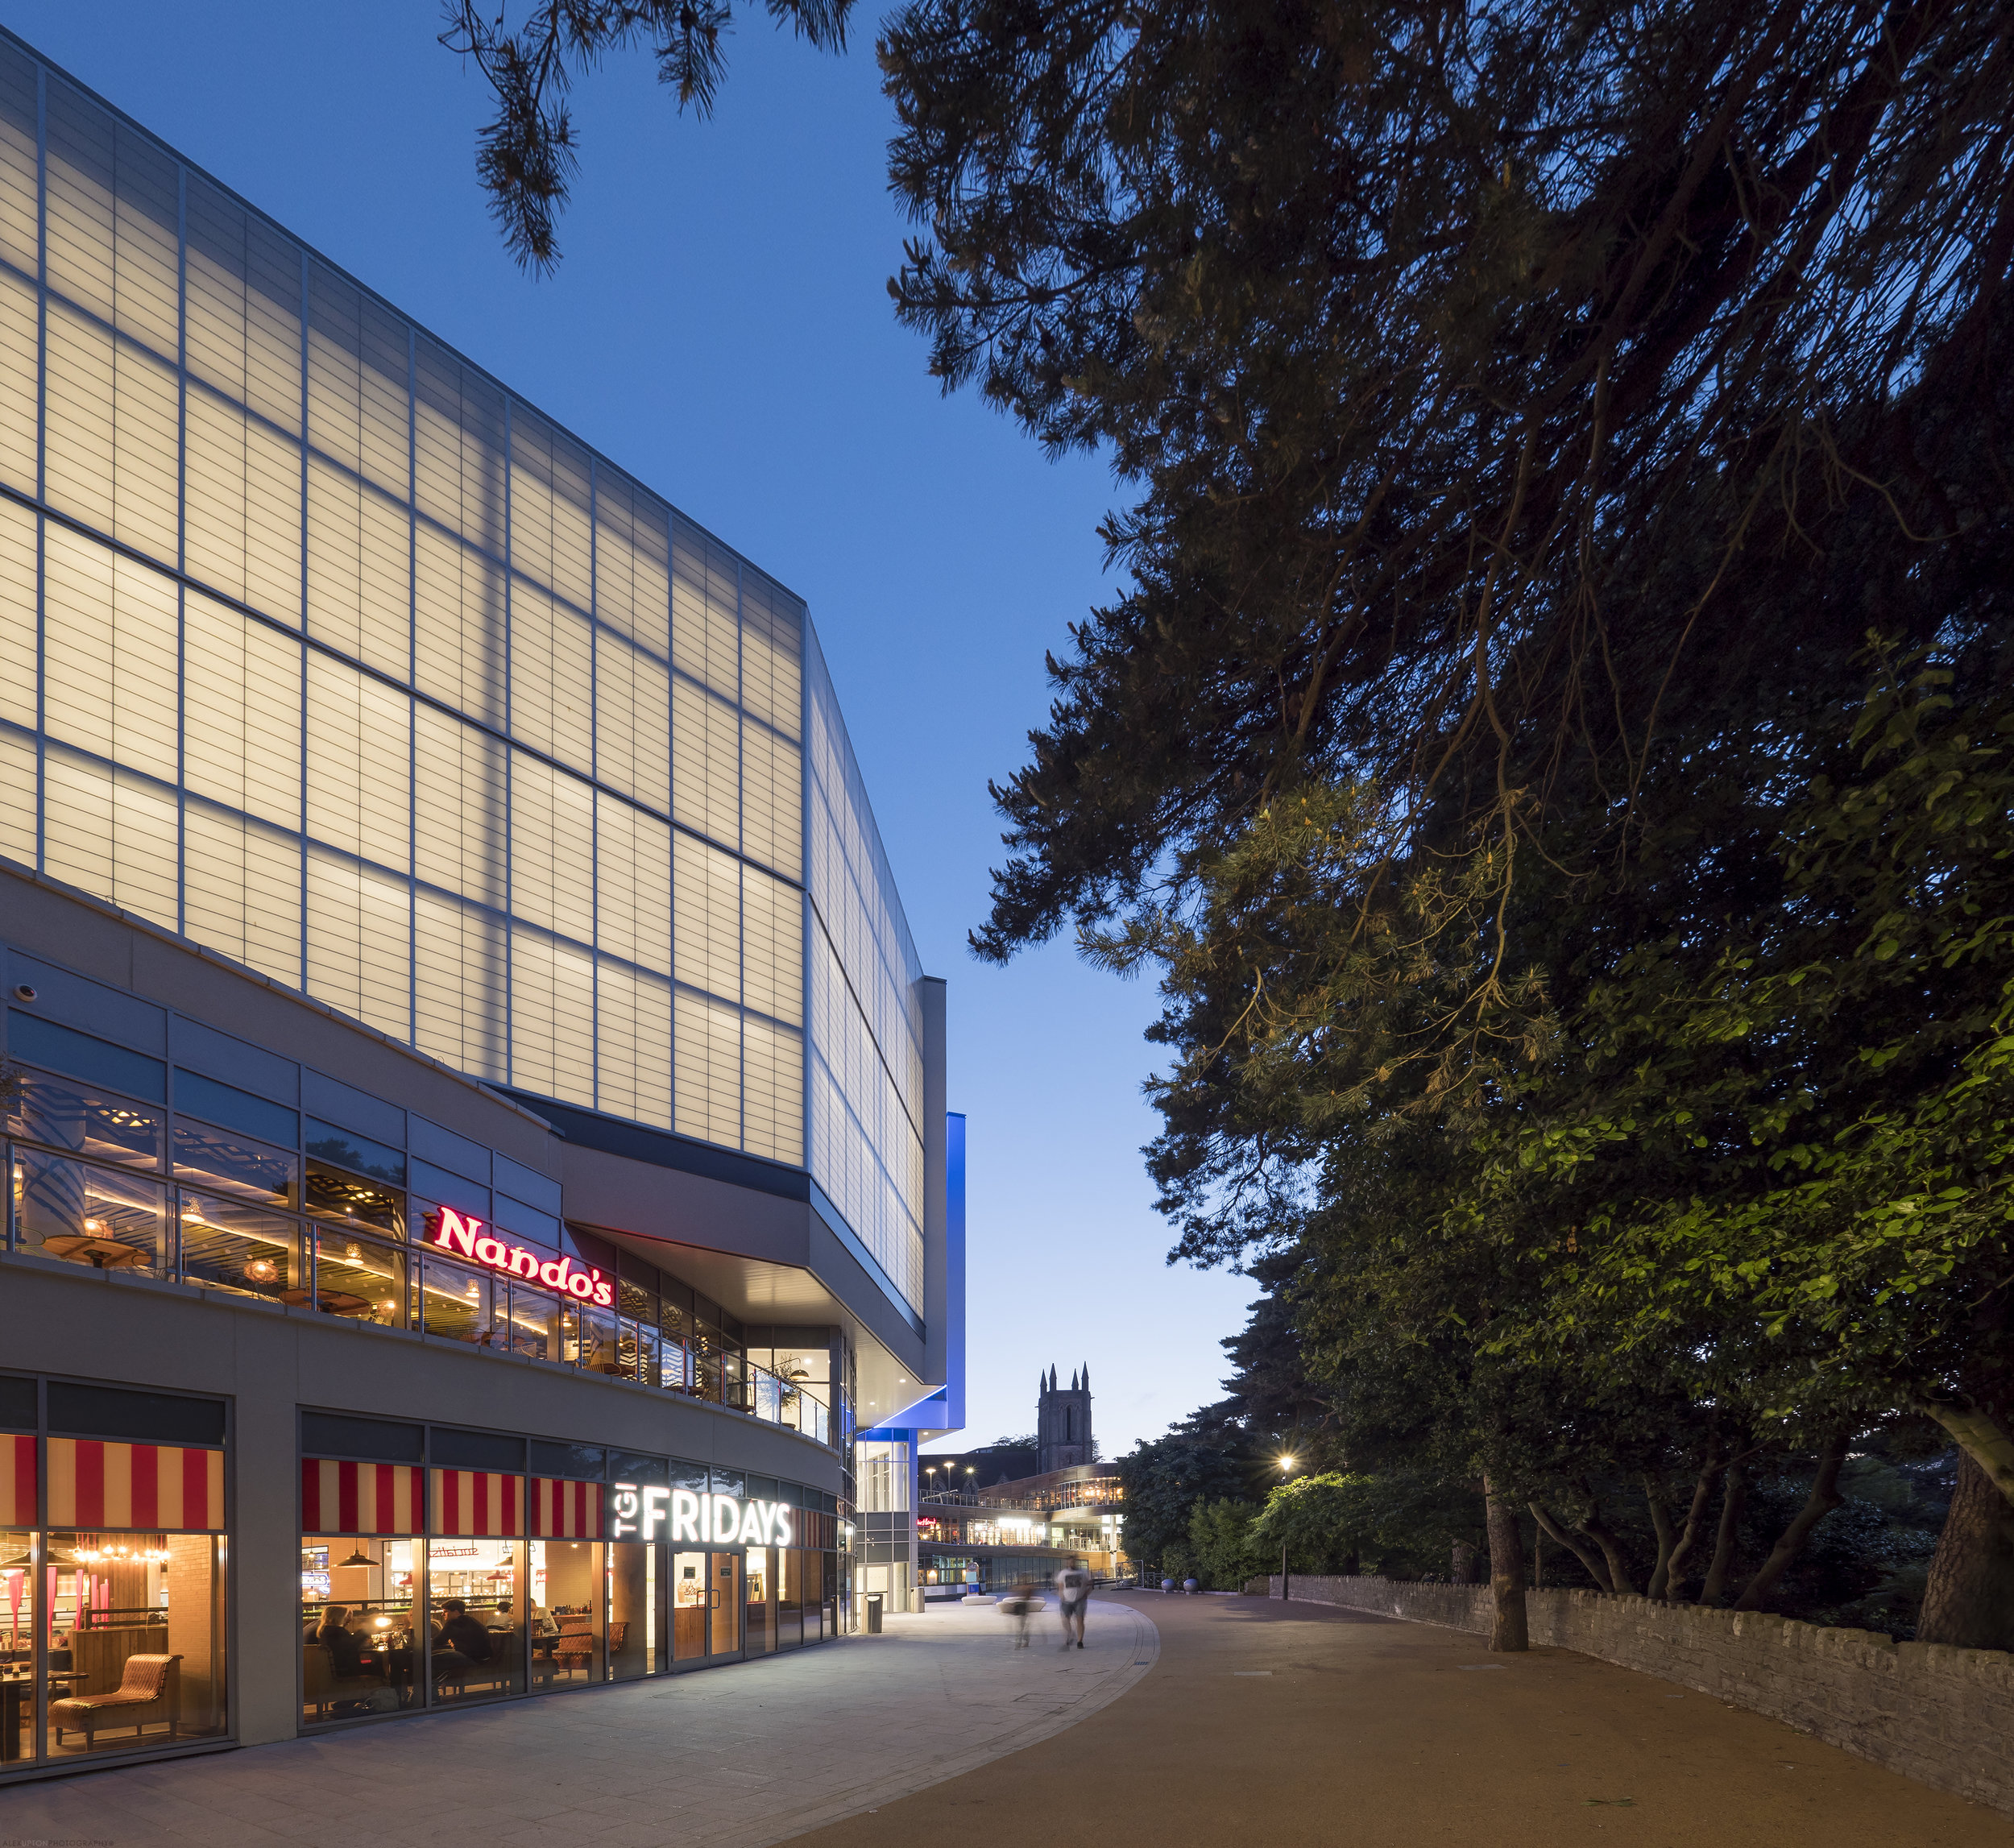 BH2 Bournemouth utilises a building material called Kalwall which allows light to permeate through the buildings facade.